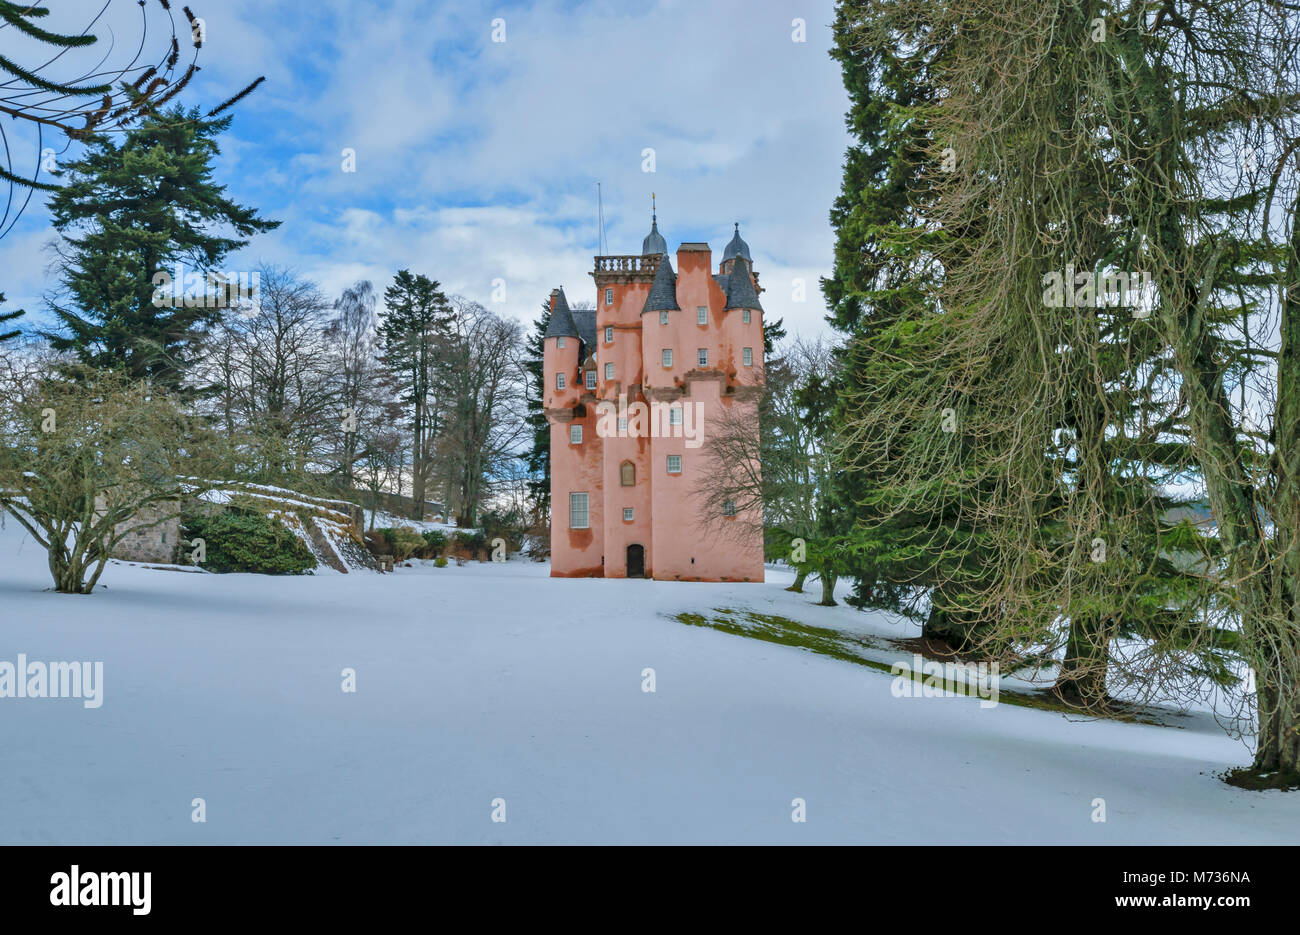 CRAIGIEVAR CASTLE ABERDEENSHIRE SCOTLAND SURROUNDED BY DEEP WINTER SNOW AND EVERGREEN PINE TREES - Stock Image